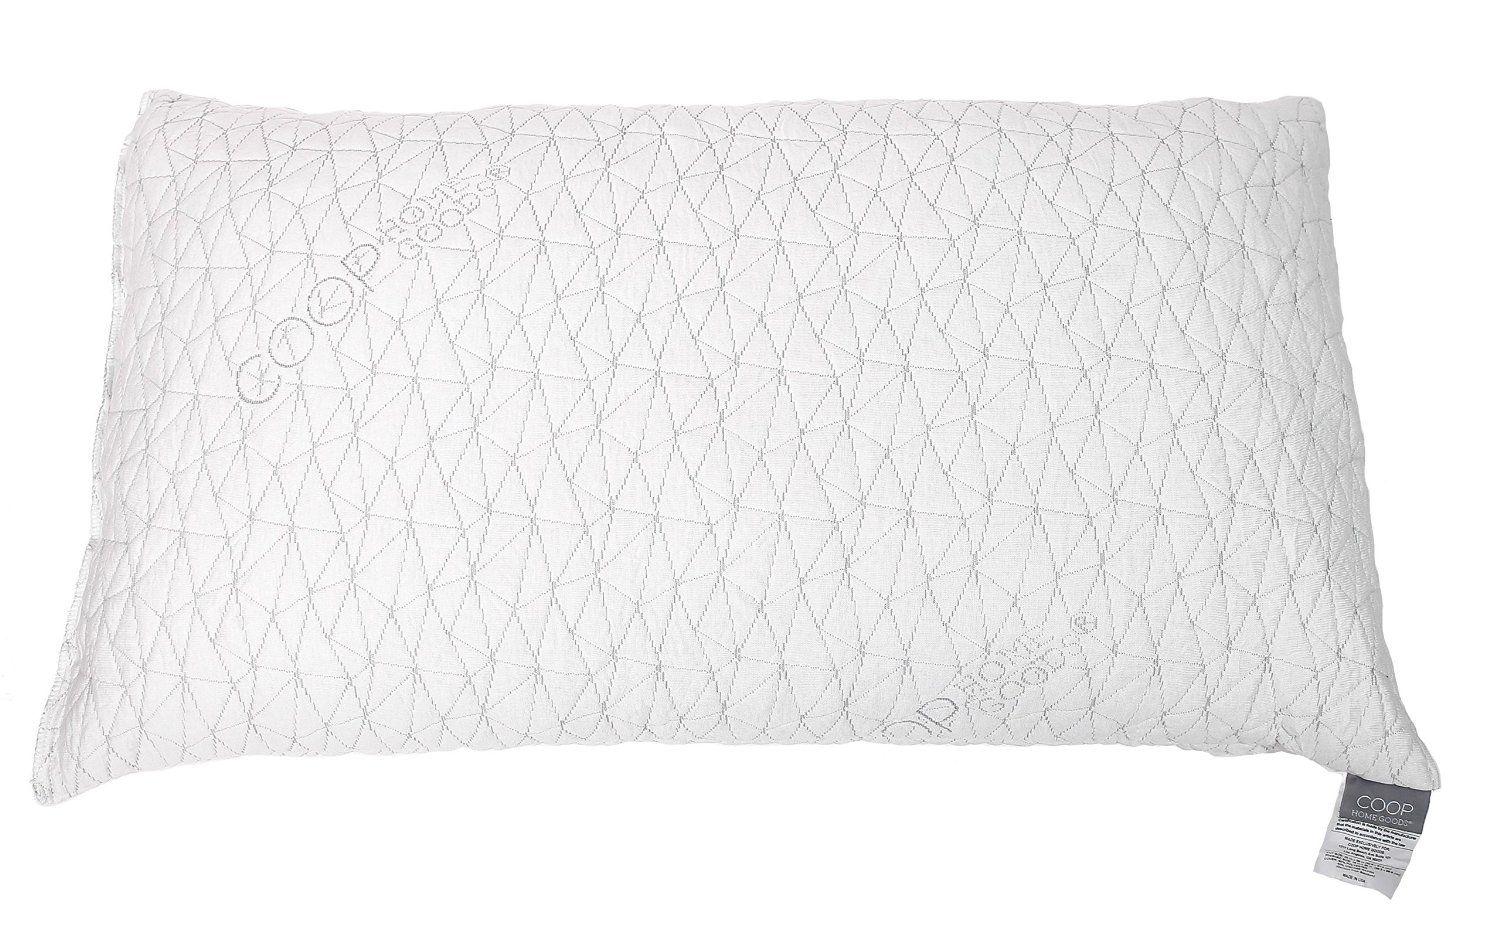 Coop Home Goods Adjustable Shredded Memory Foam Pillow – With Viscose Rayon Cover Derived from Bamboo, Removable Cover